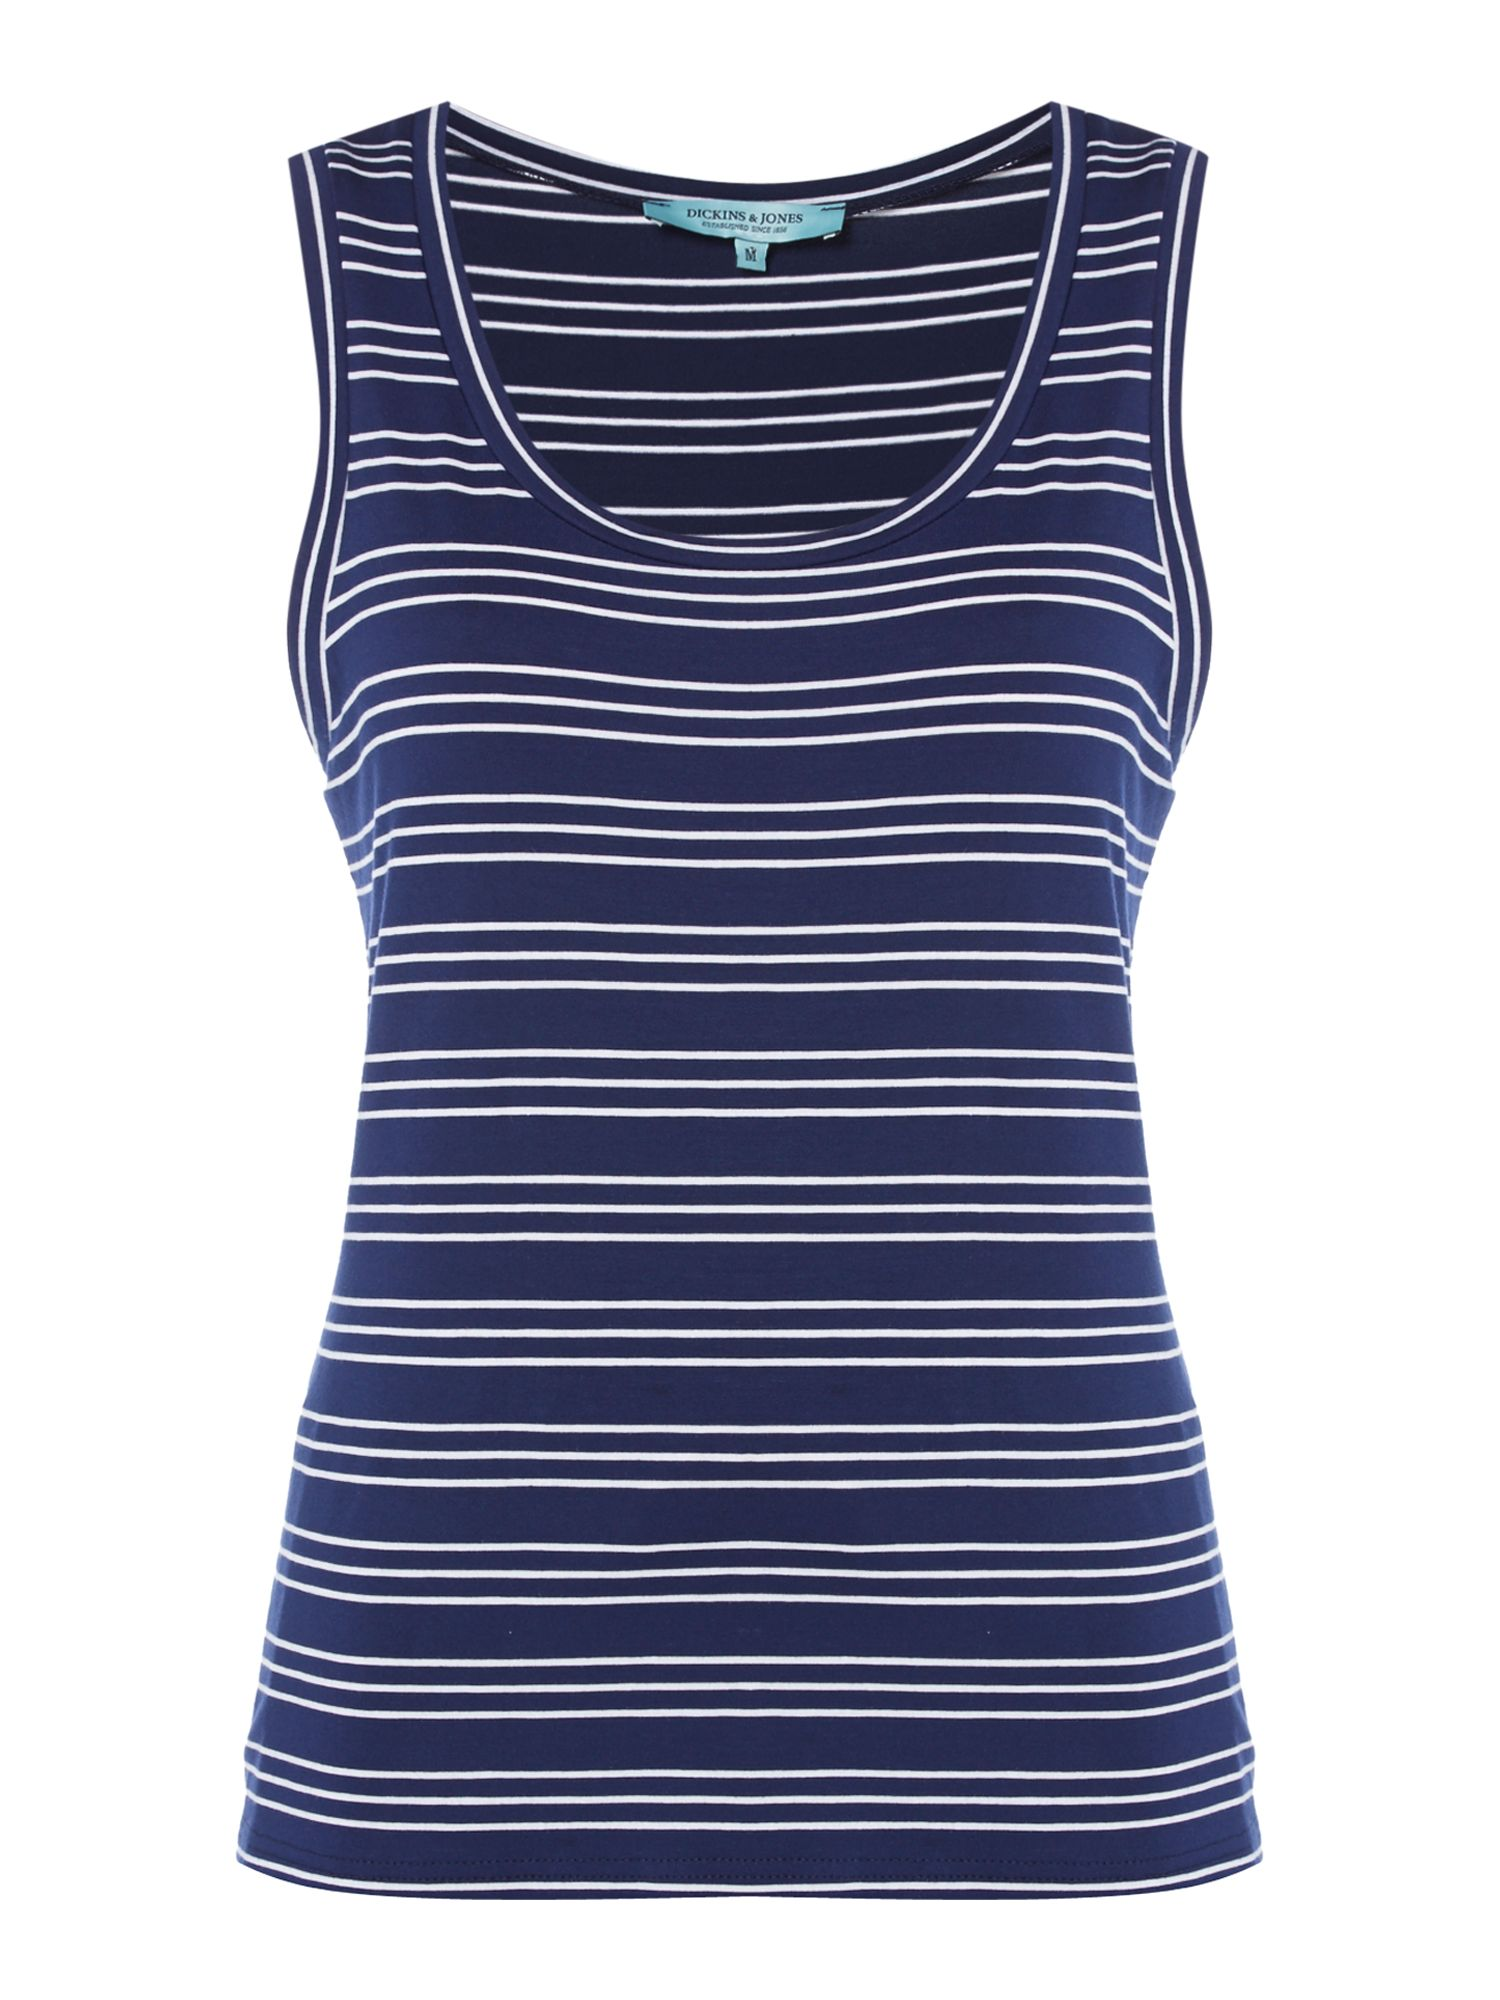 Dickins & Jones Stripe Beach Vest, Navy